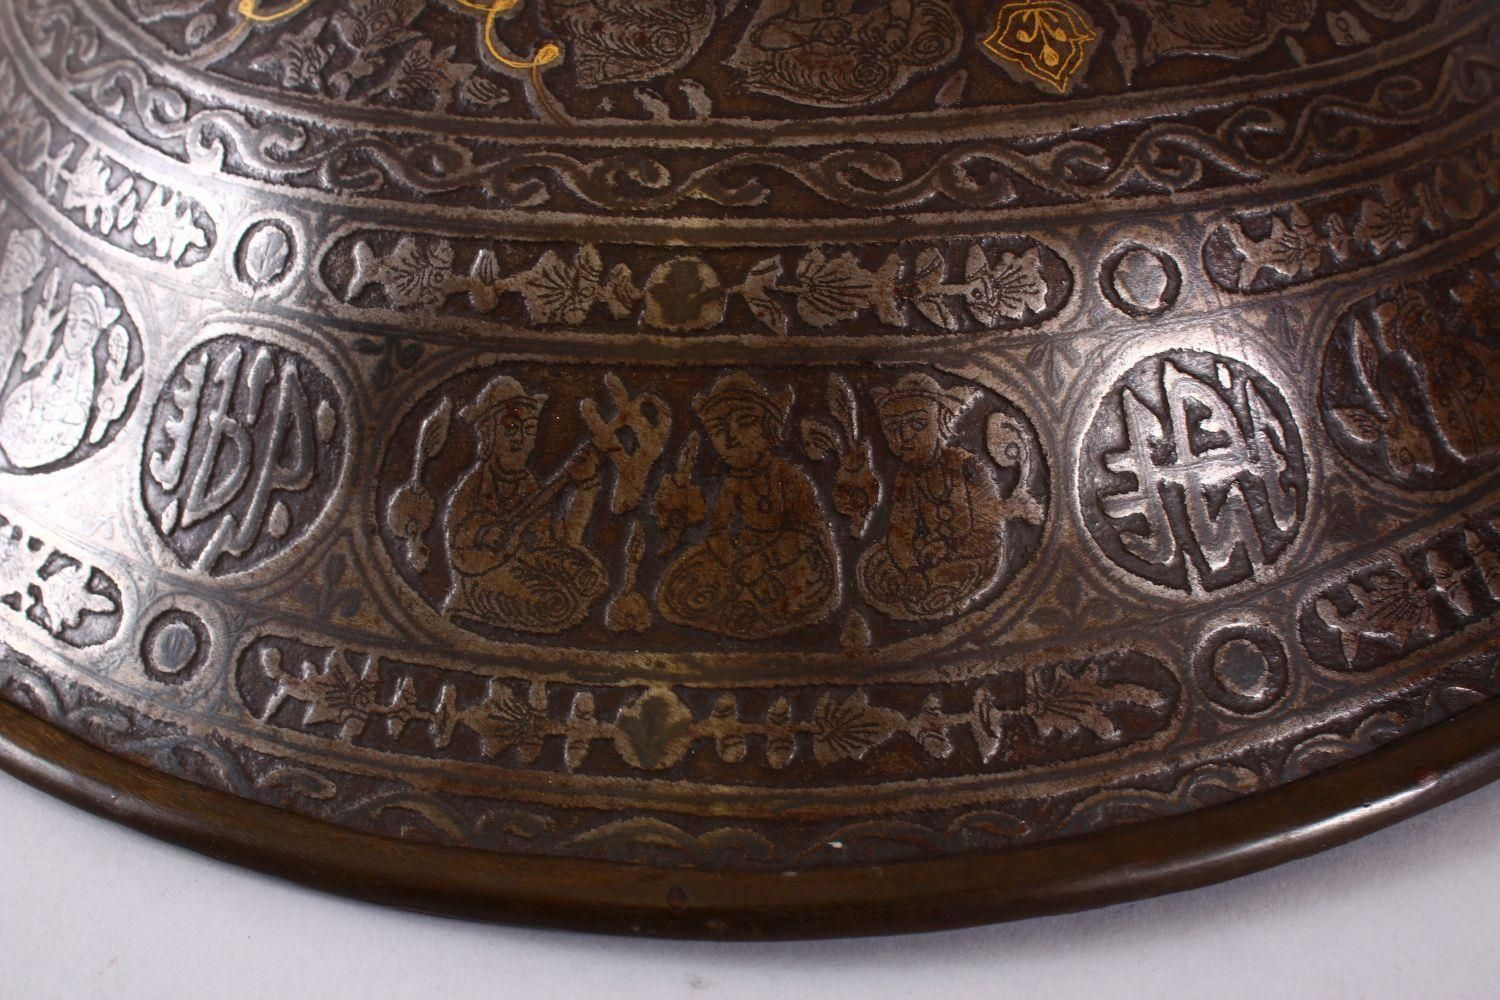 A LARGE 19TH CENTURY PERSIAN GILT DECORATED STEEL SHIELD, with carved decoration of figures, bands - Image 10 of 12